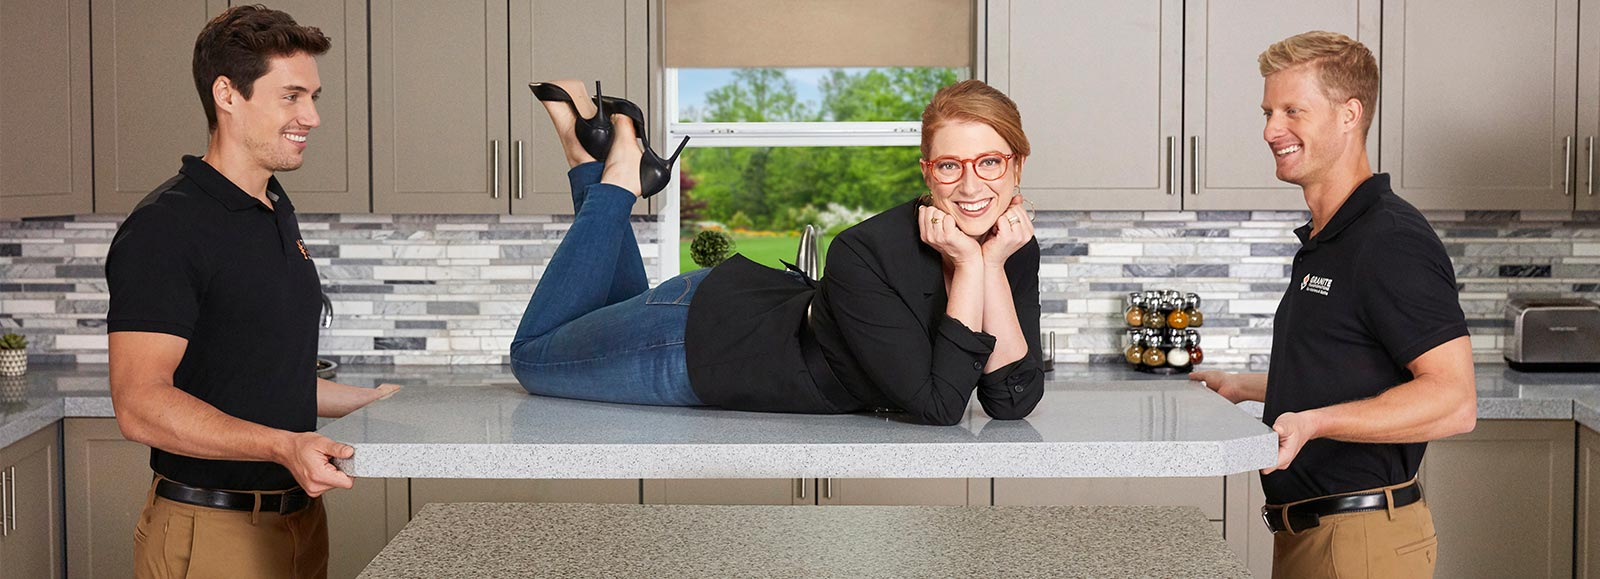 A woman with red hair and red glasses lying on a new countertop being held up by two men on either side of the countertop.